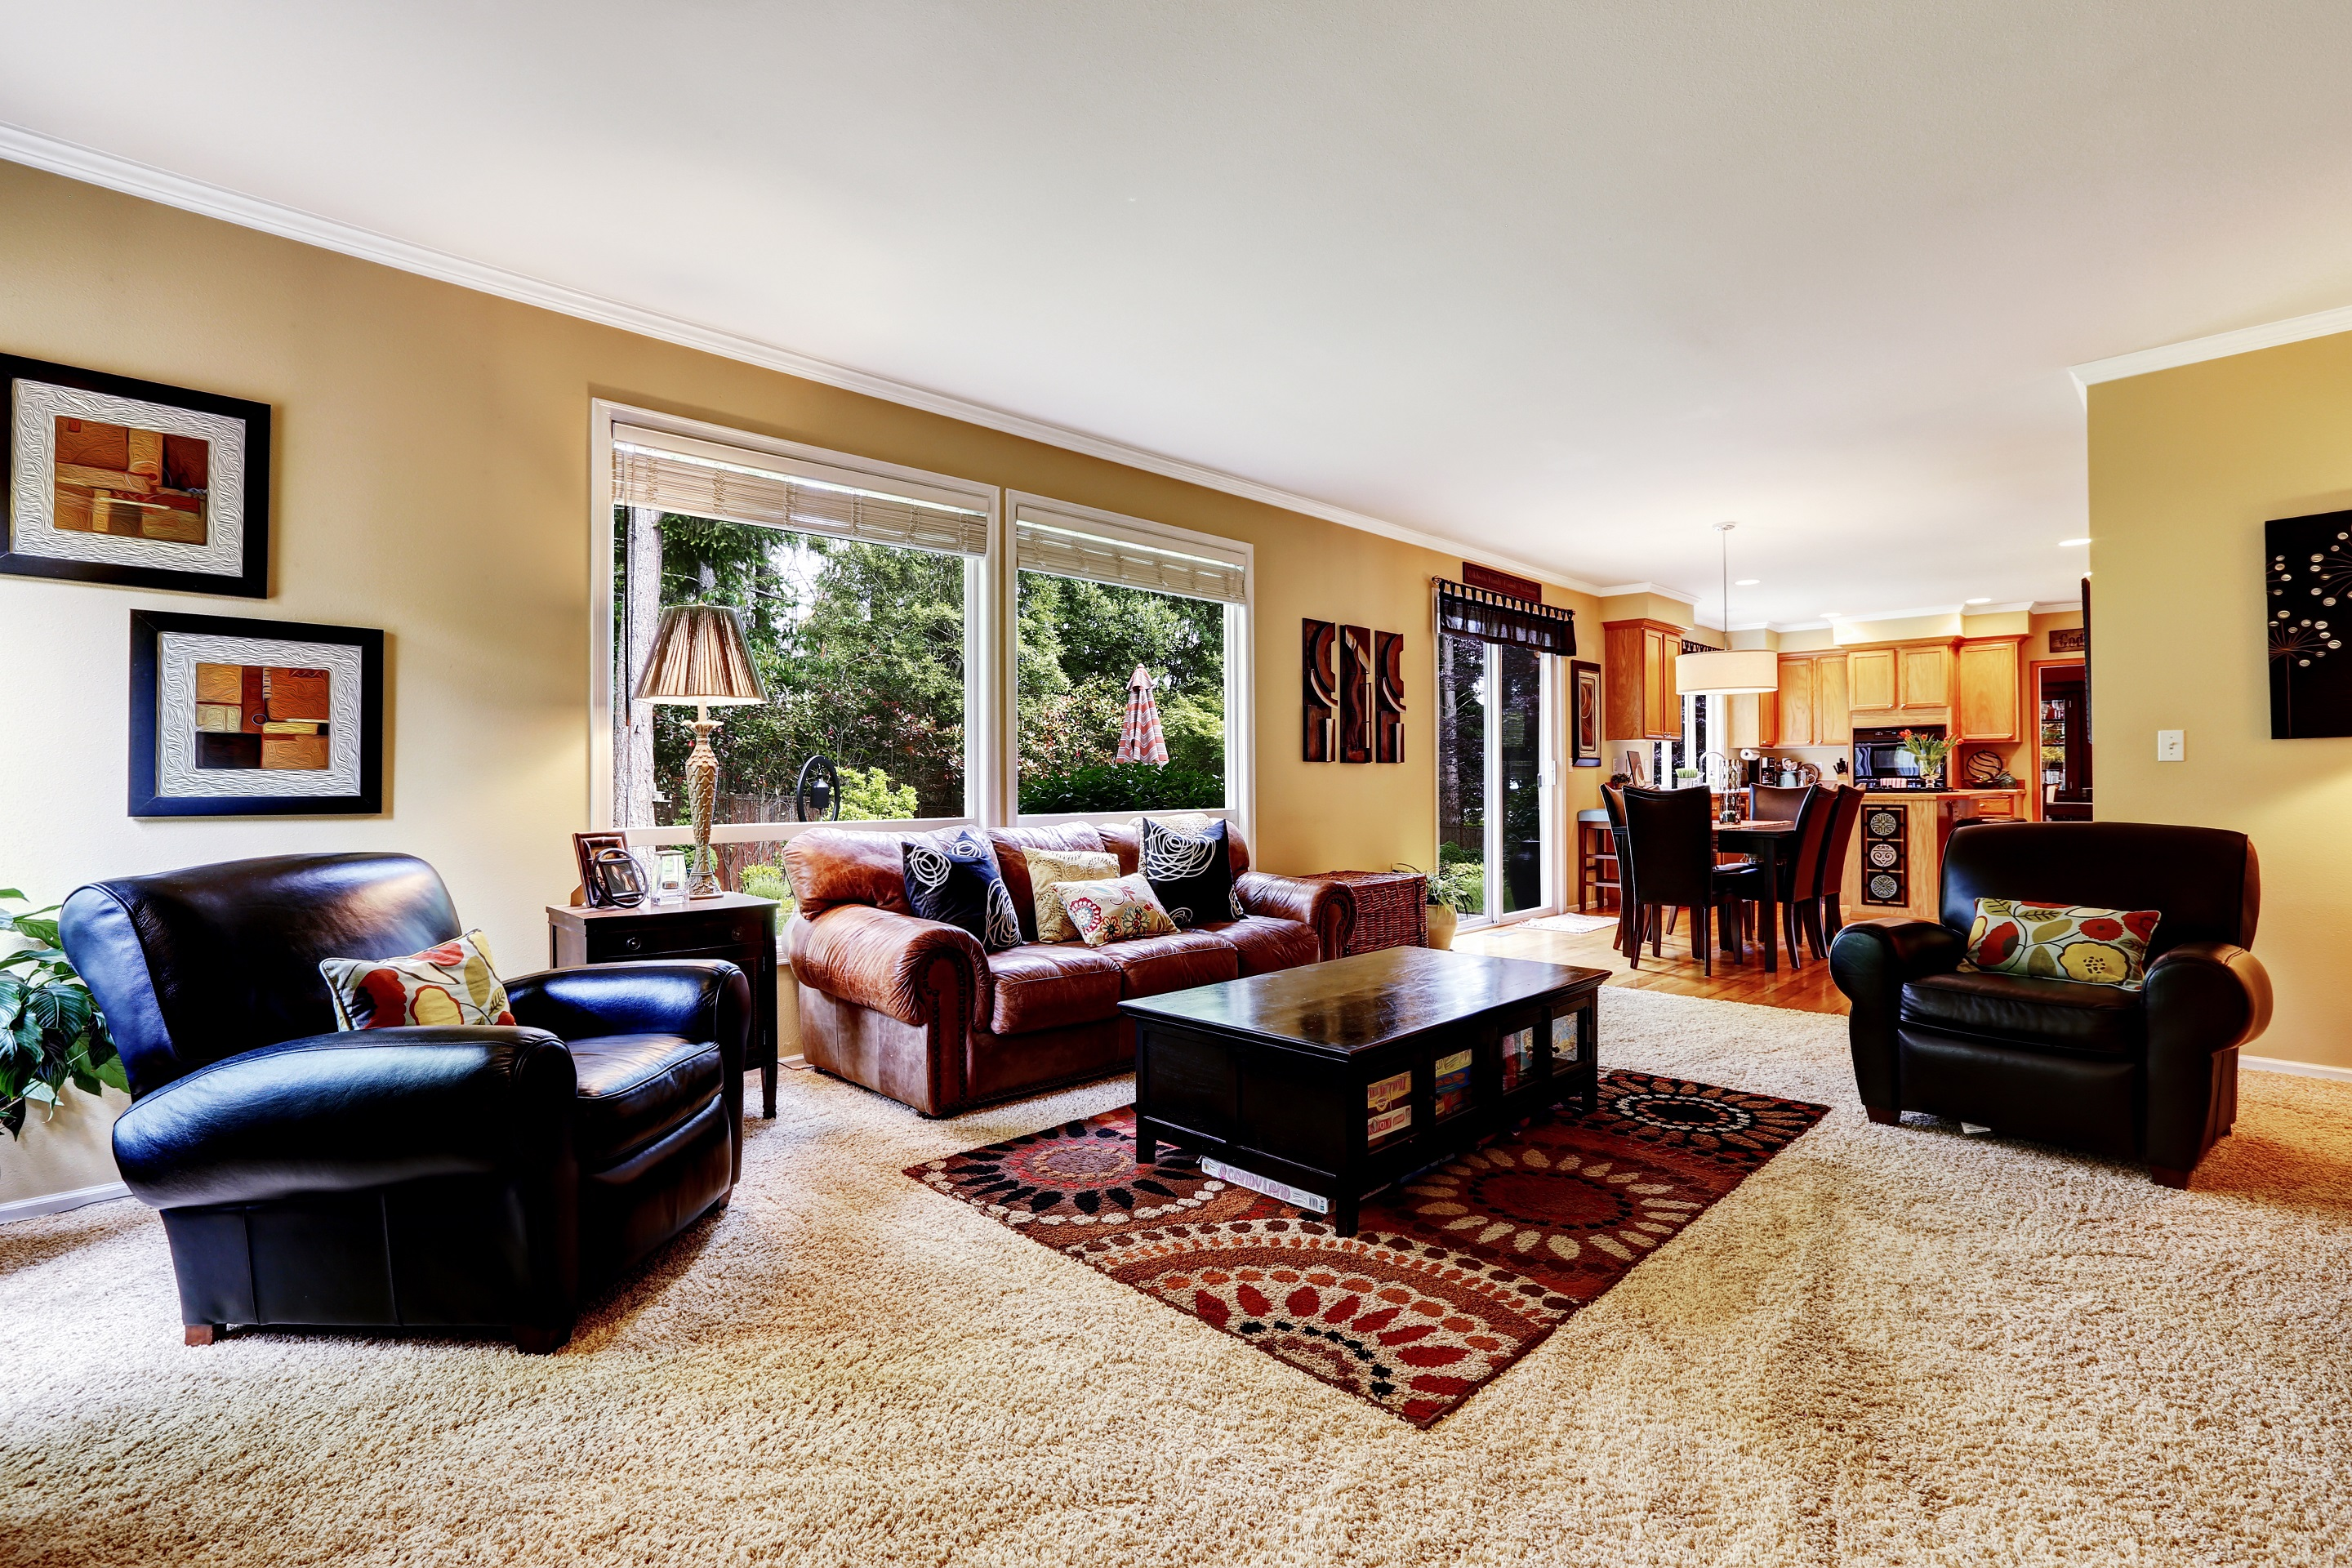 The Ron Turner Real Estate Group image 5